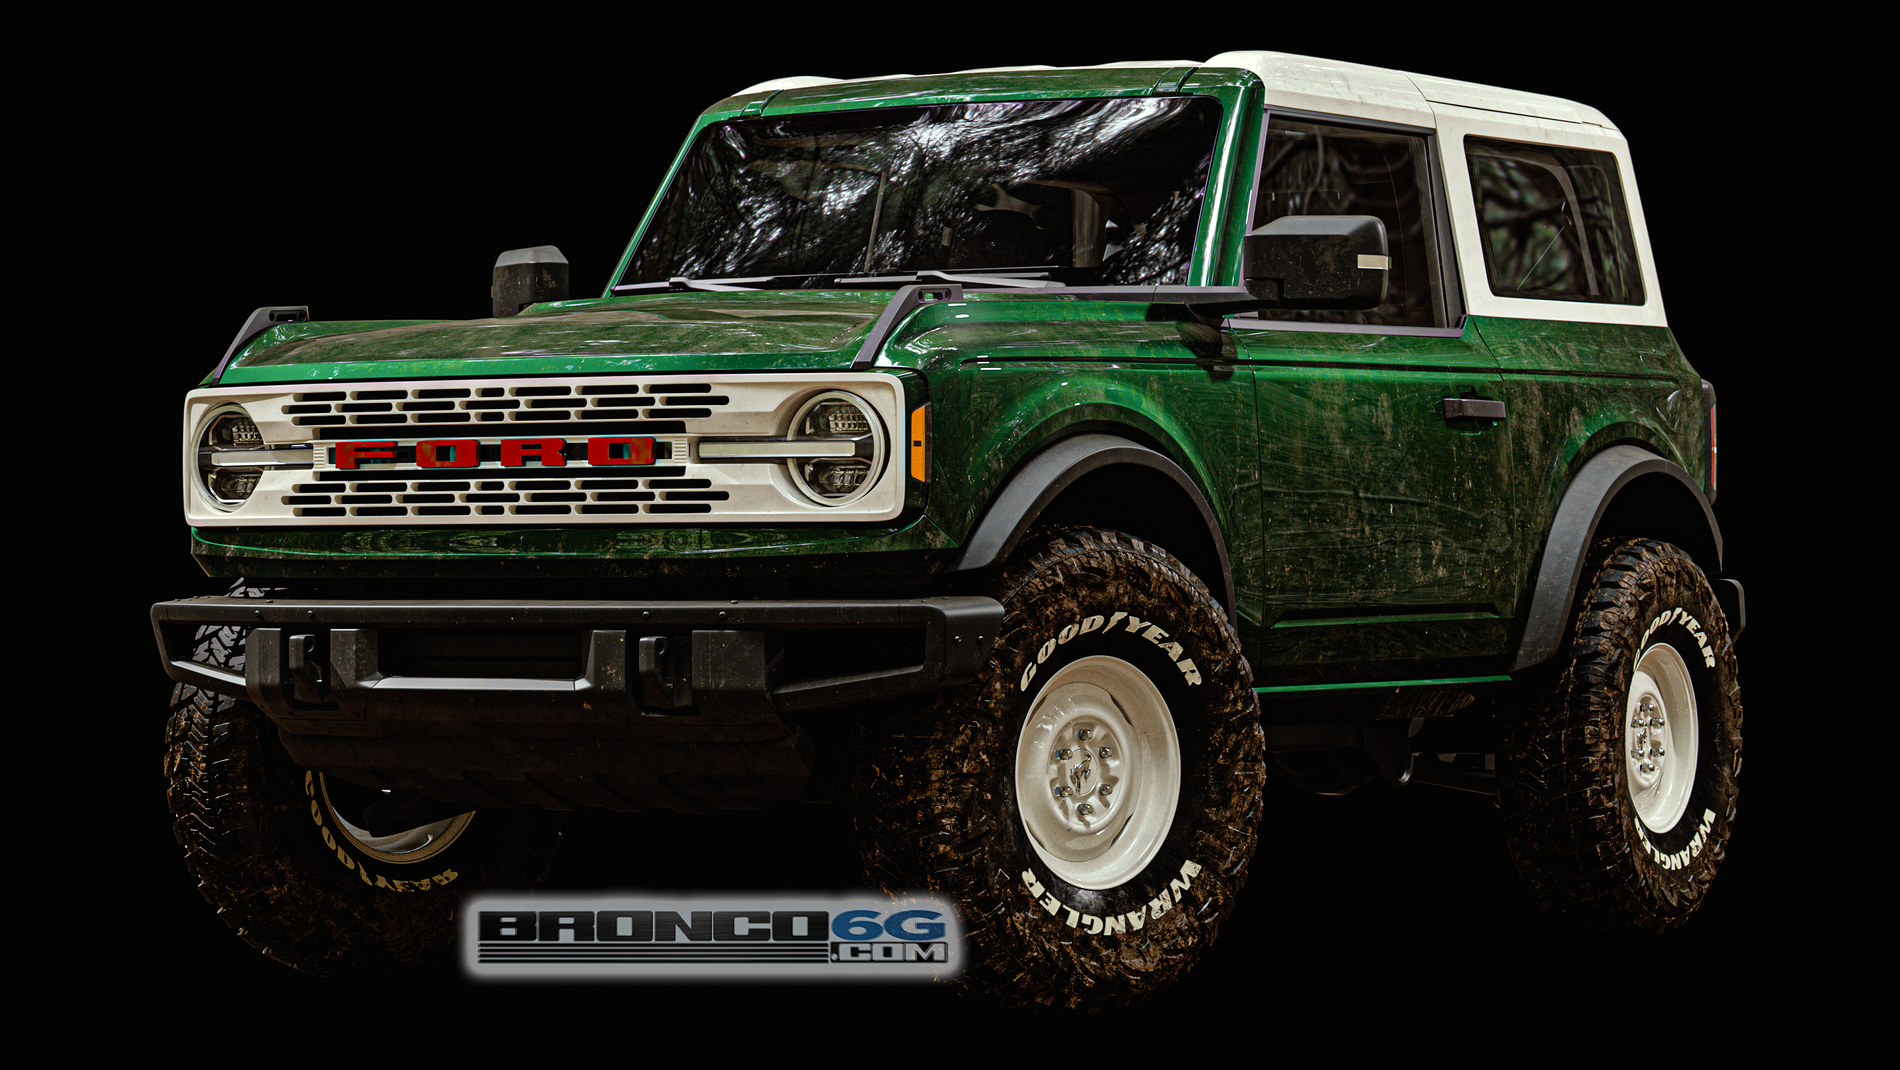 2021 2022 Bronco Heritage Edition Everglades Green render 1.png